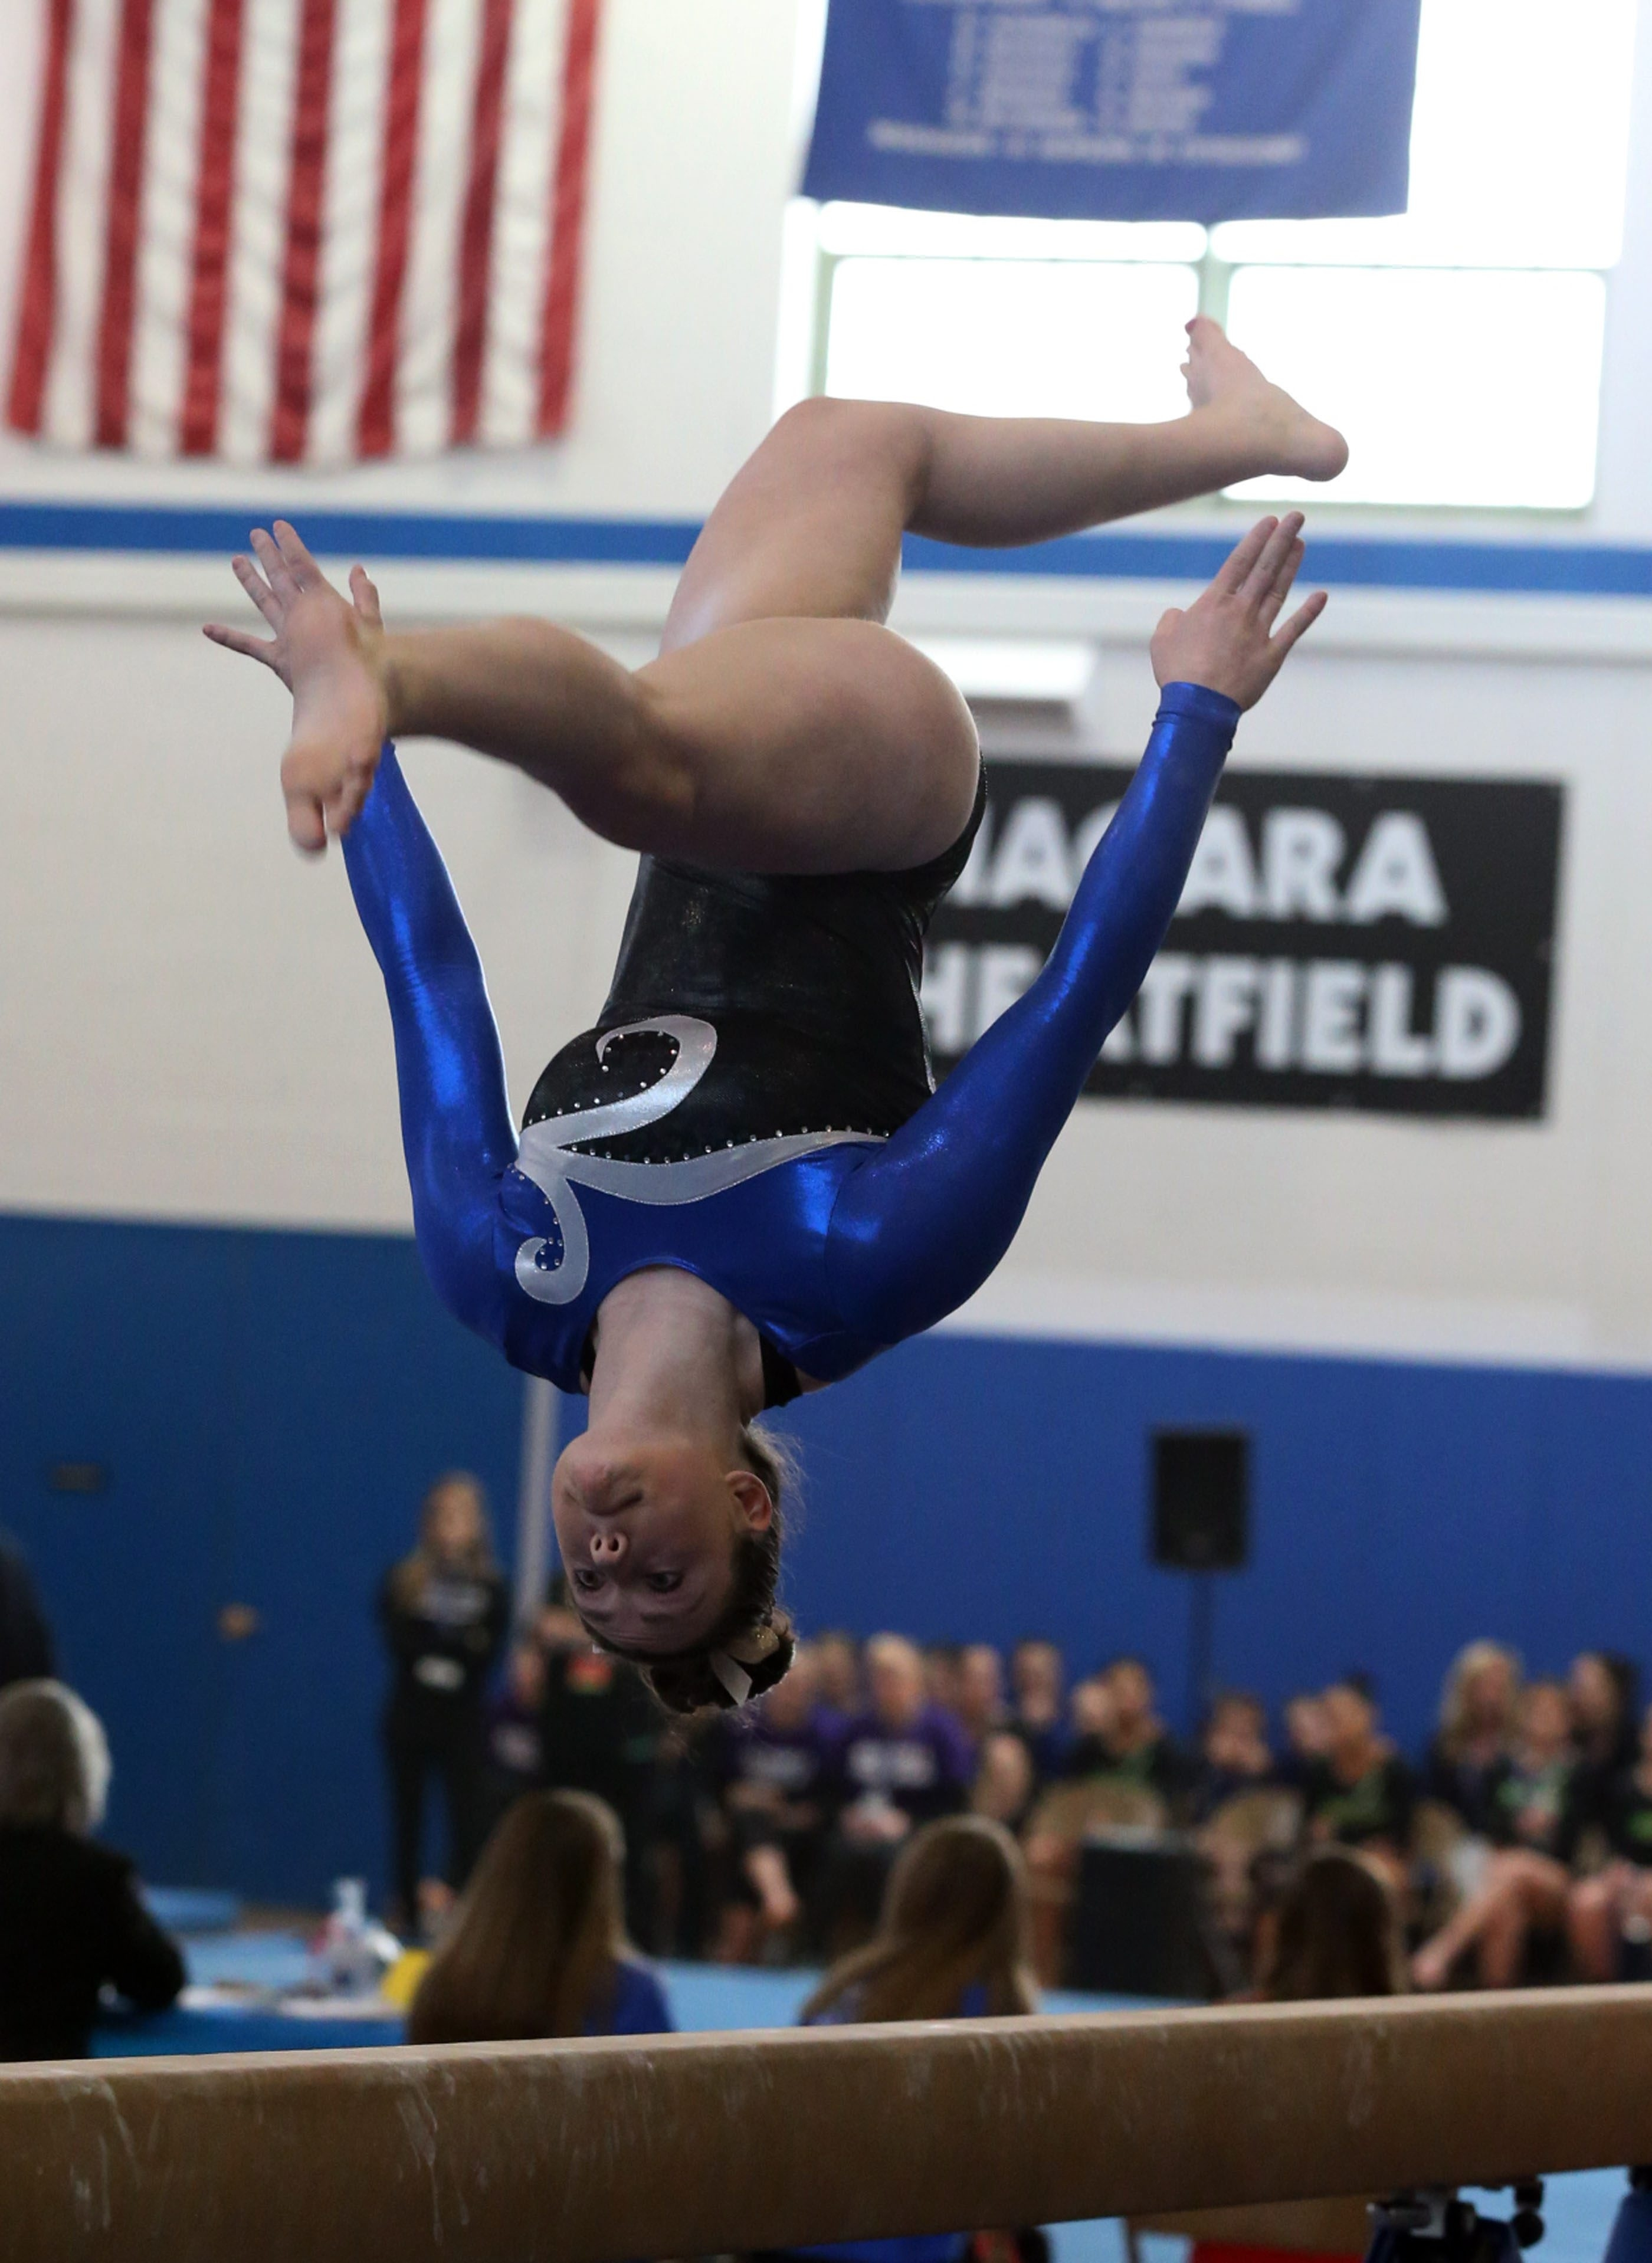 The best finish for Lancaster's Courtney Bondanza Saturday was a tie for second on the vault.